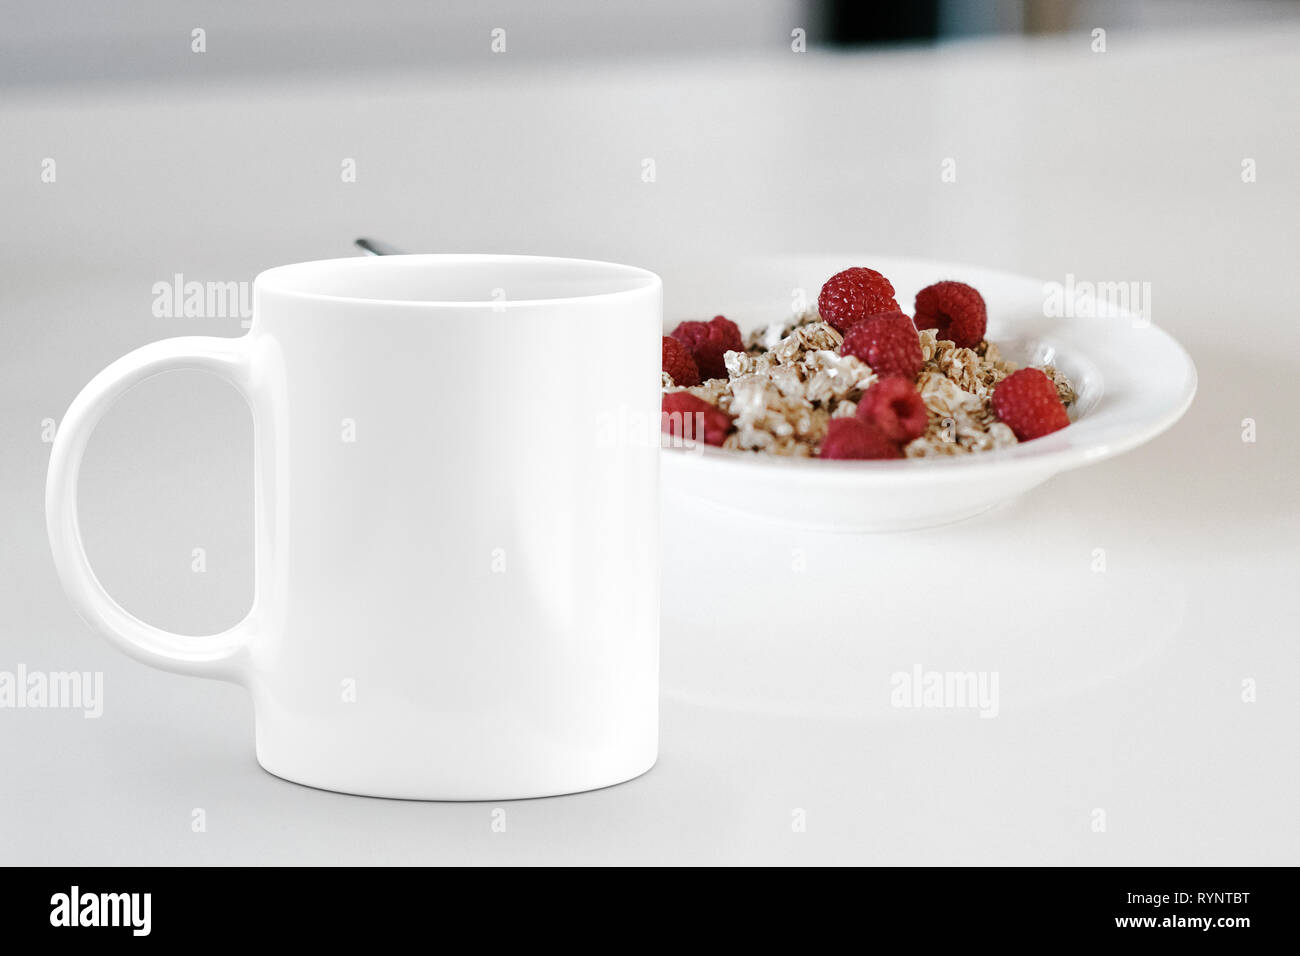 White mug next to a bowl of cereal. Perfect for businesses selling mug mockups Stock Photo